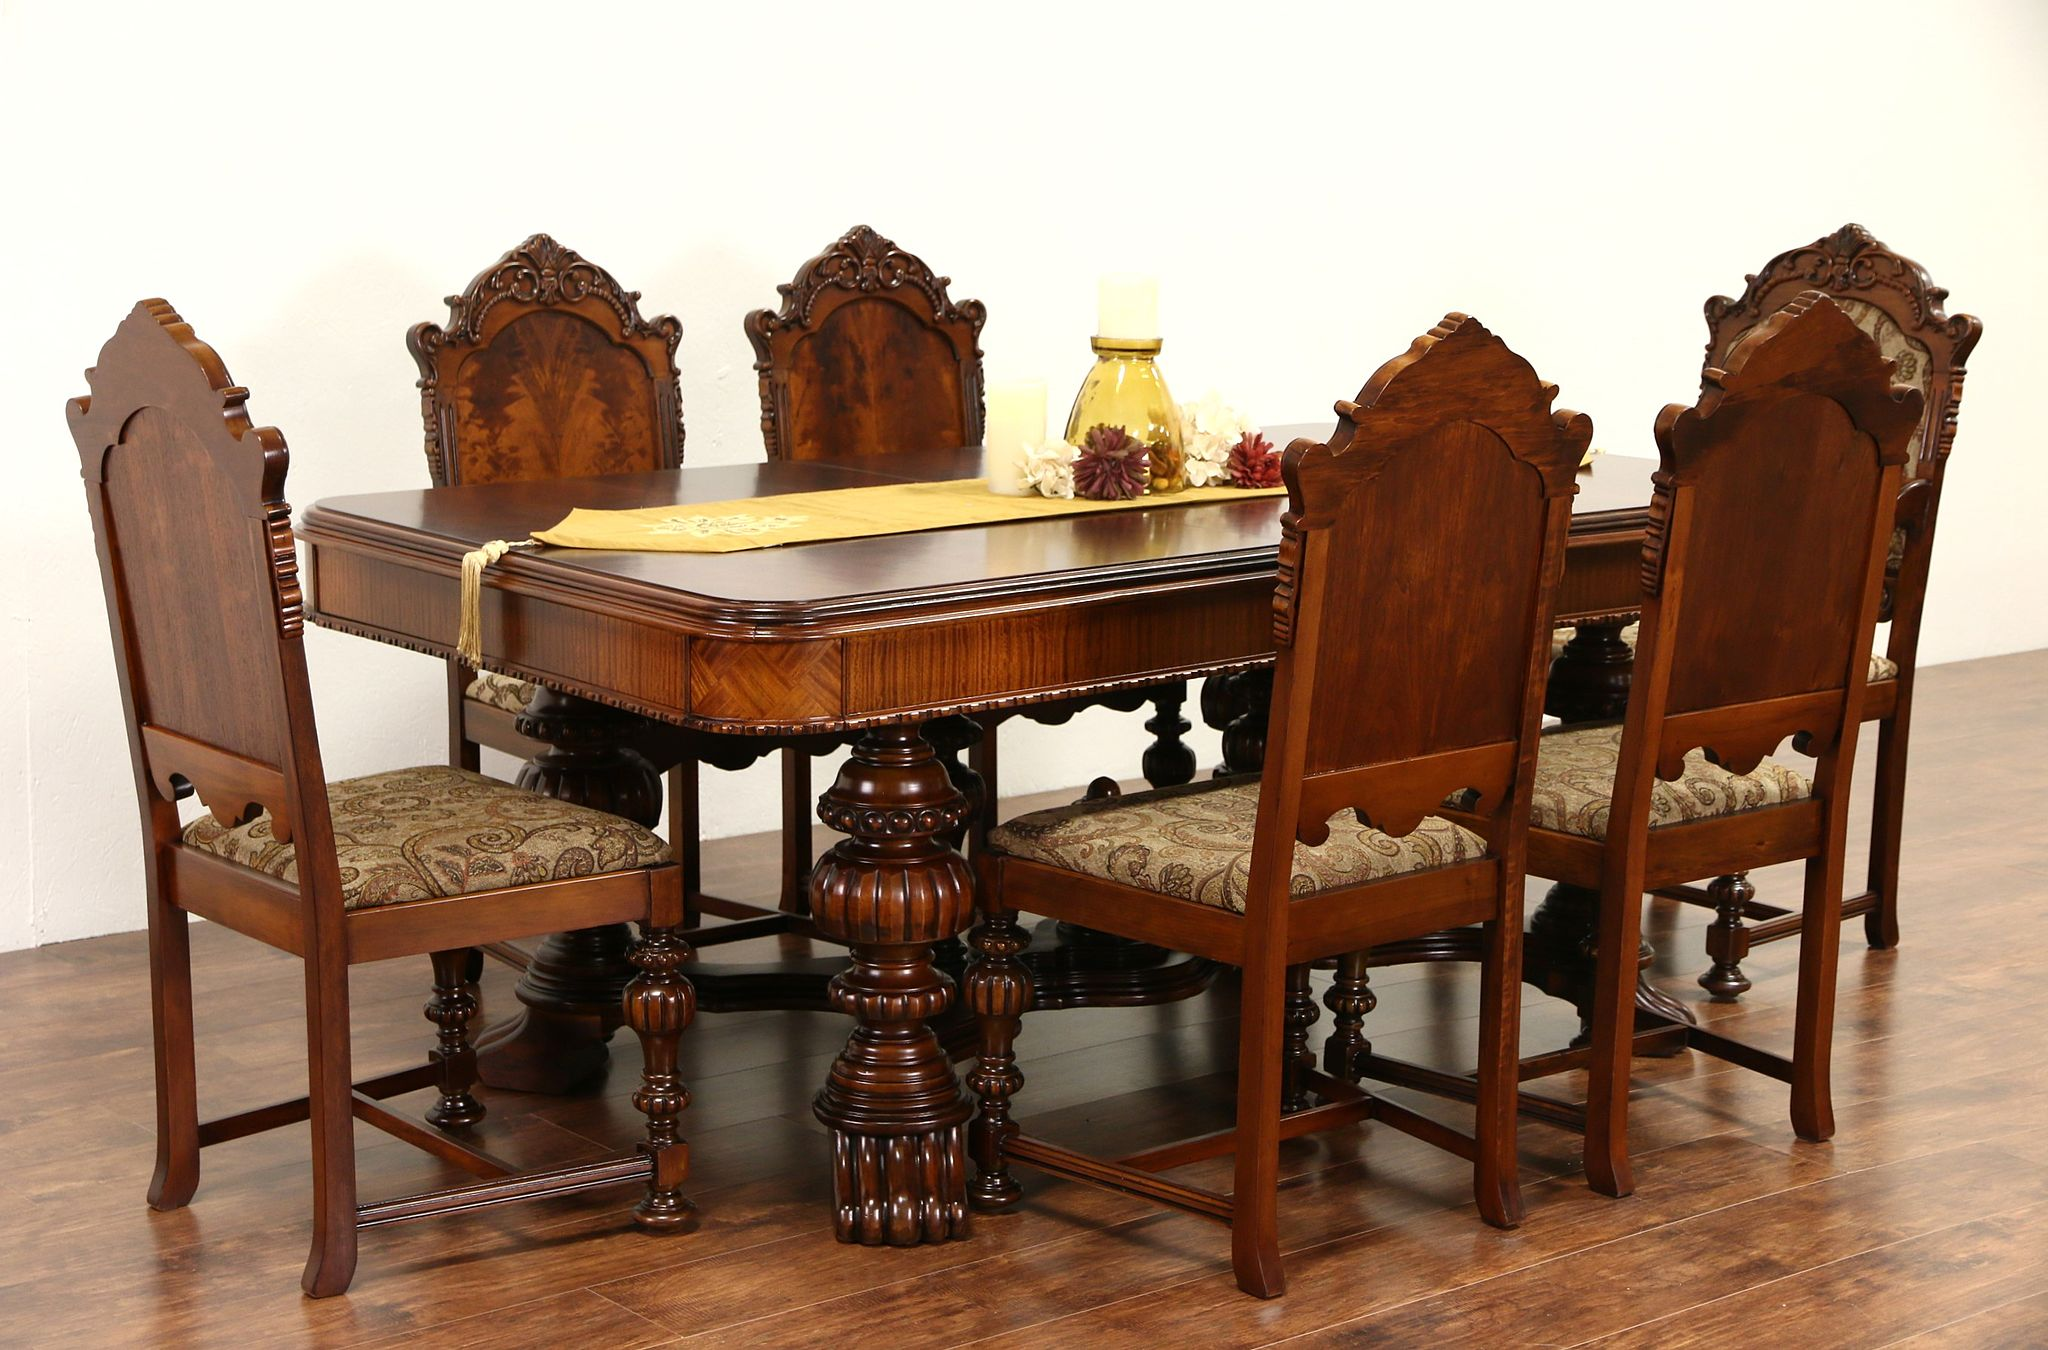 Antique Dining Set Table, Antique Dining Room Table